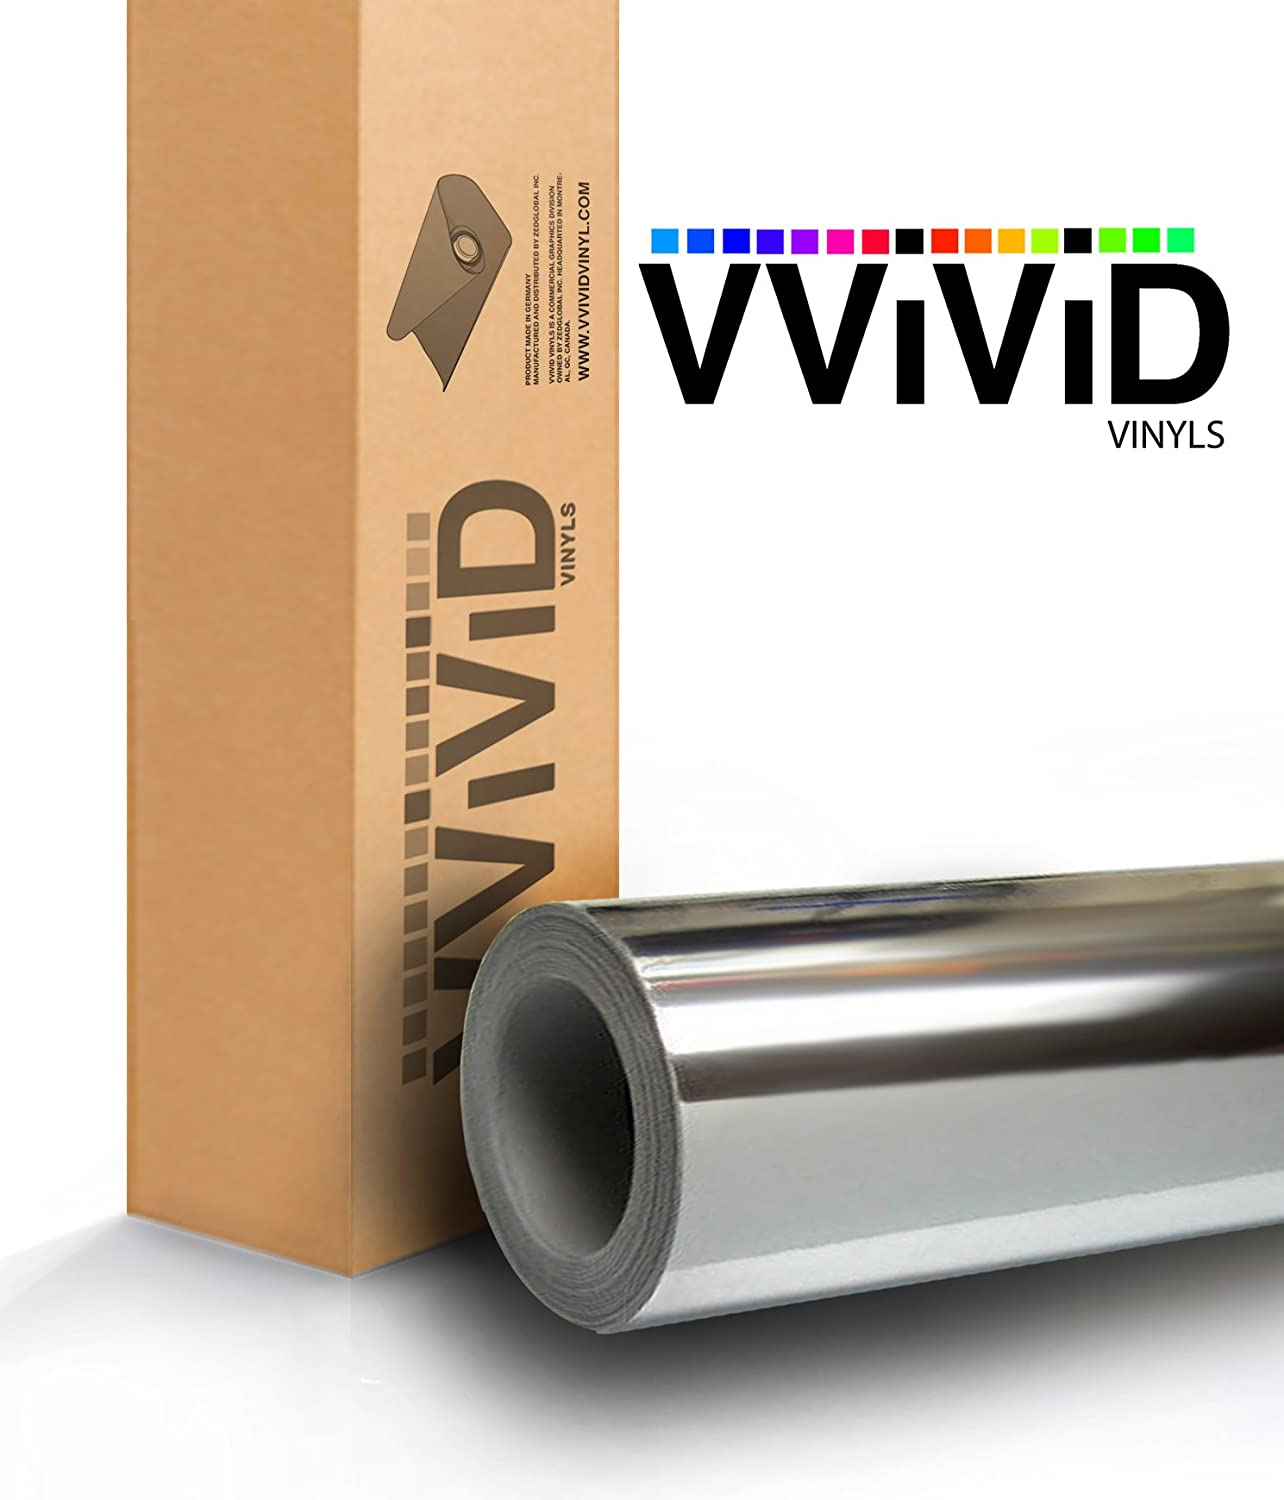 VViViD Gloss Chrome Silver Vinyl Wrap Adhesive Film Roll Air Release DIY Decal Sheet 17.9 x 60